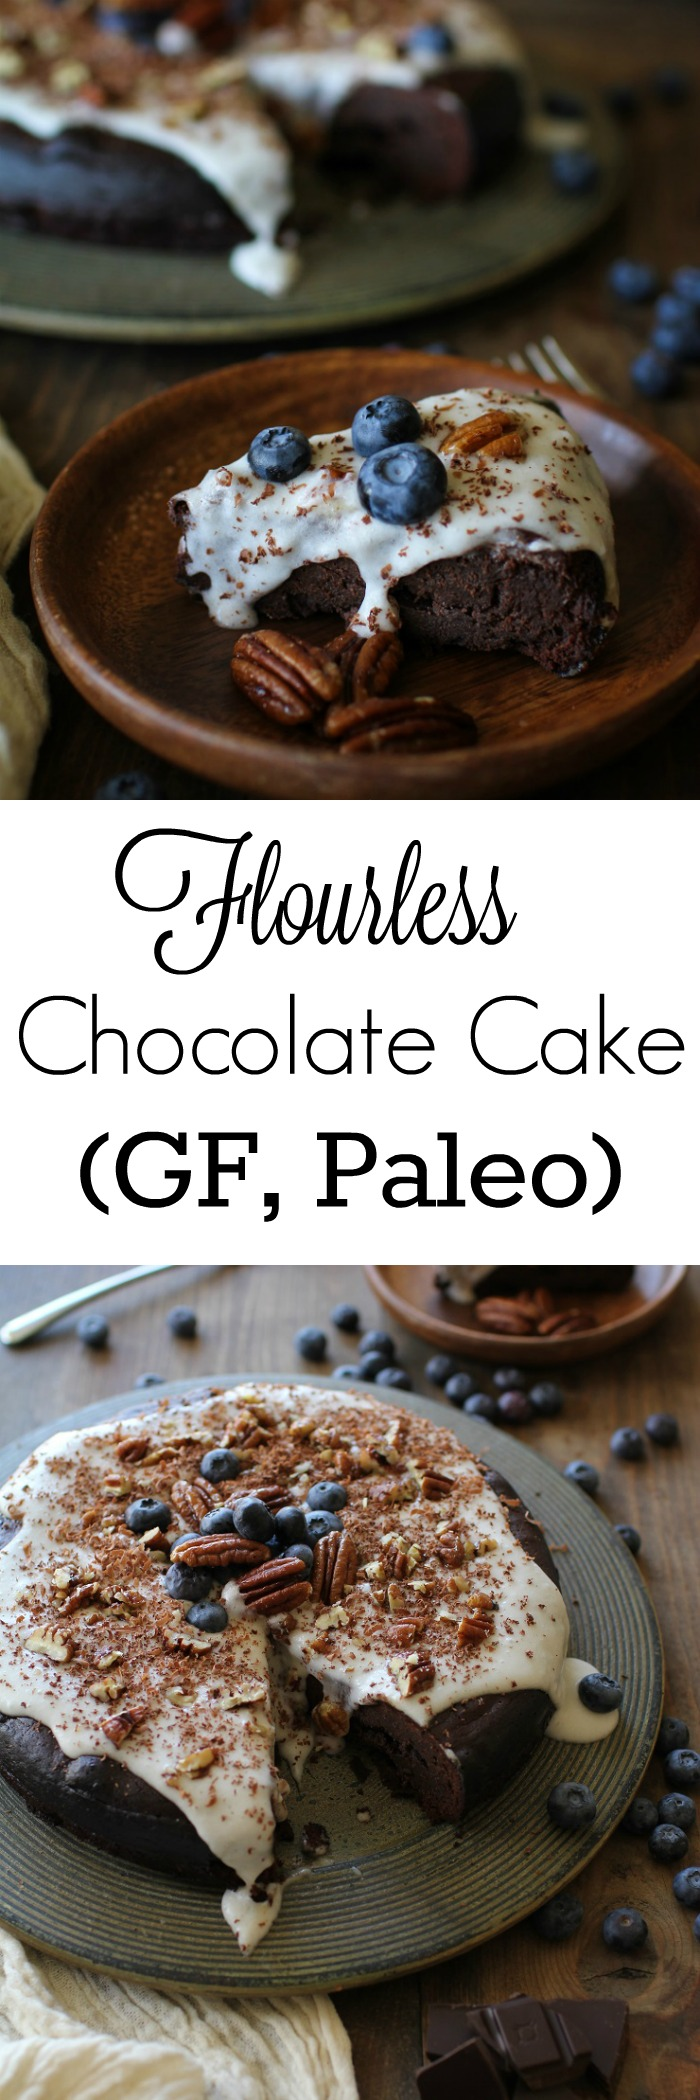 Flourless Chocolate Cake - dairy-free, refuned sugar-free and paleo | TheRoastedRoot.net #valentinesday #dessert #healthy